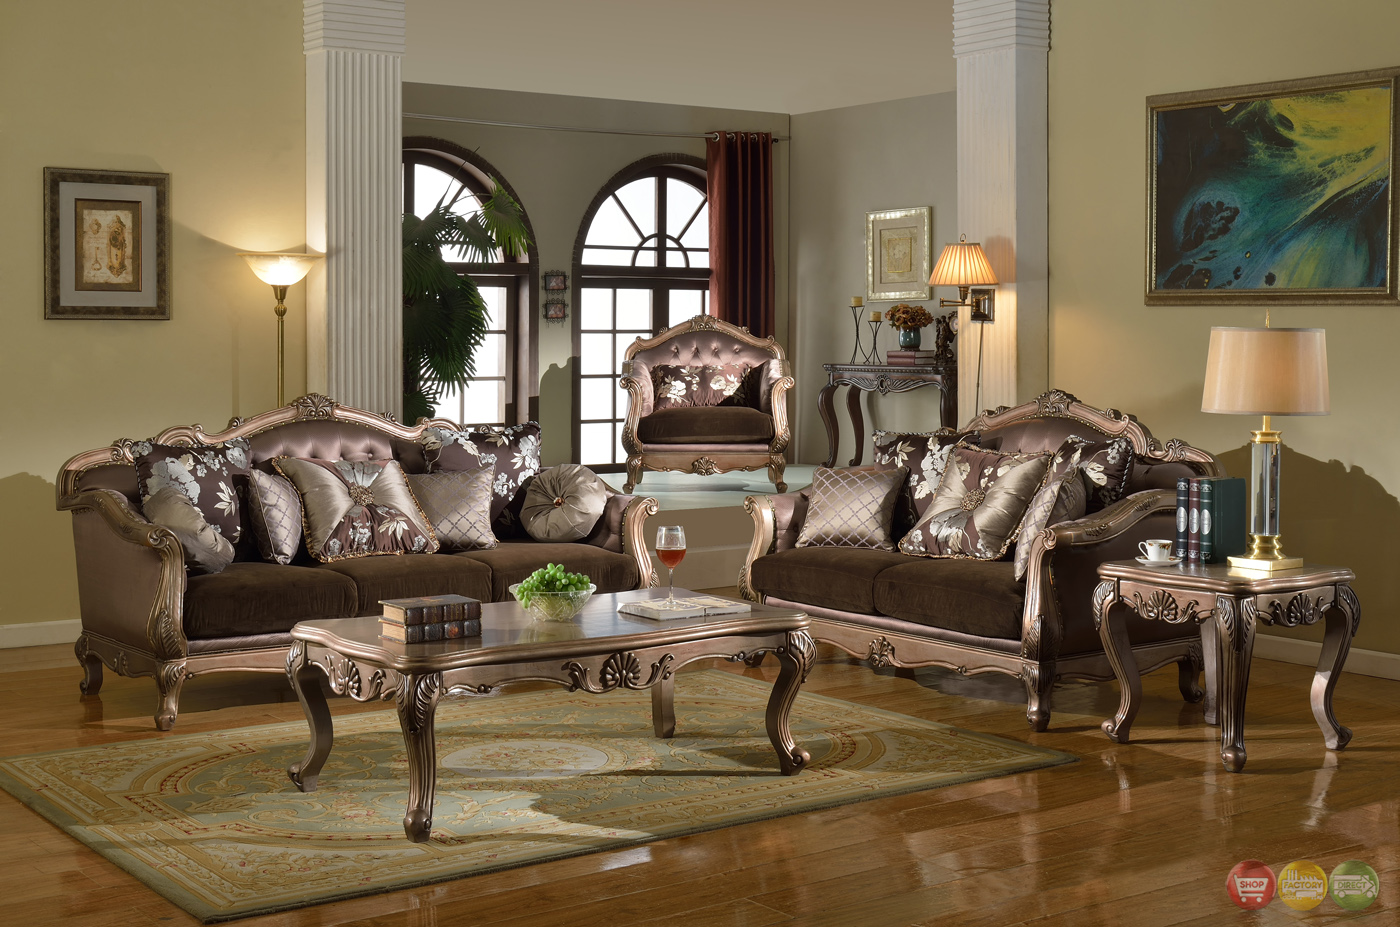 antique style traditional sofa loveseat luxury living room